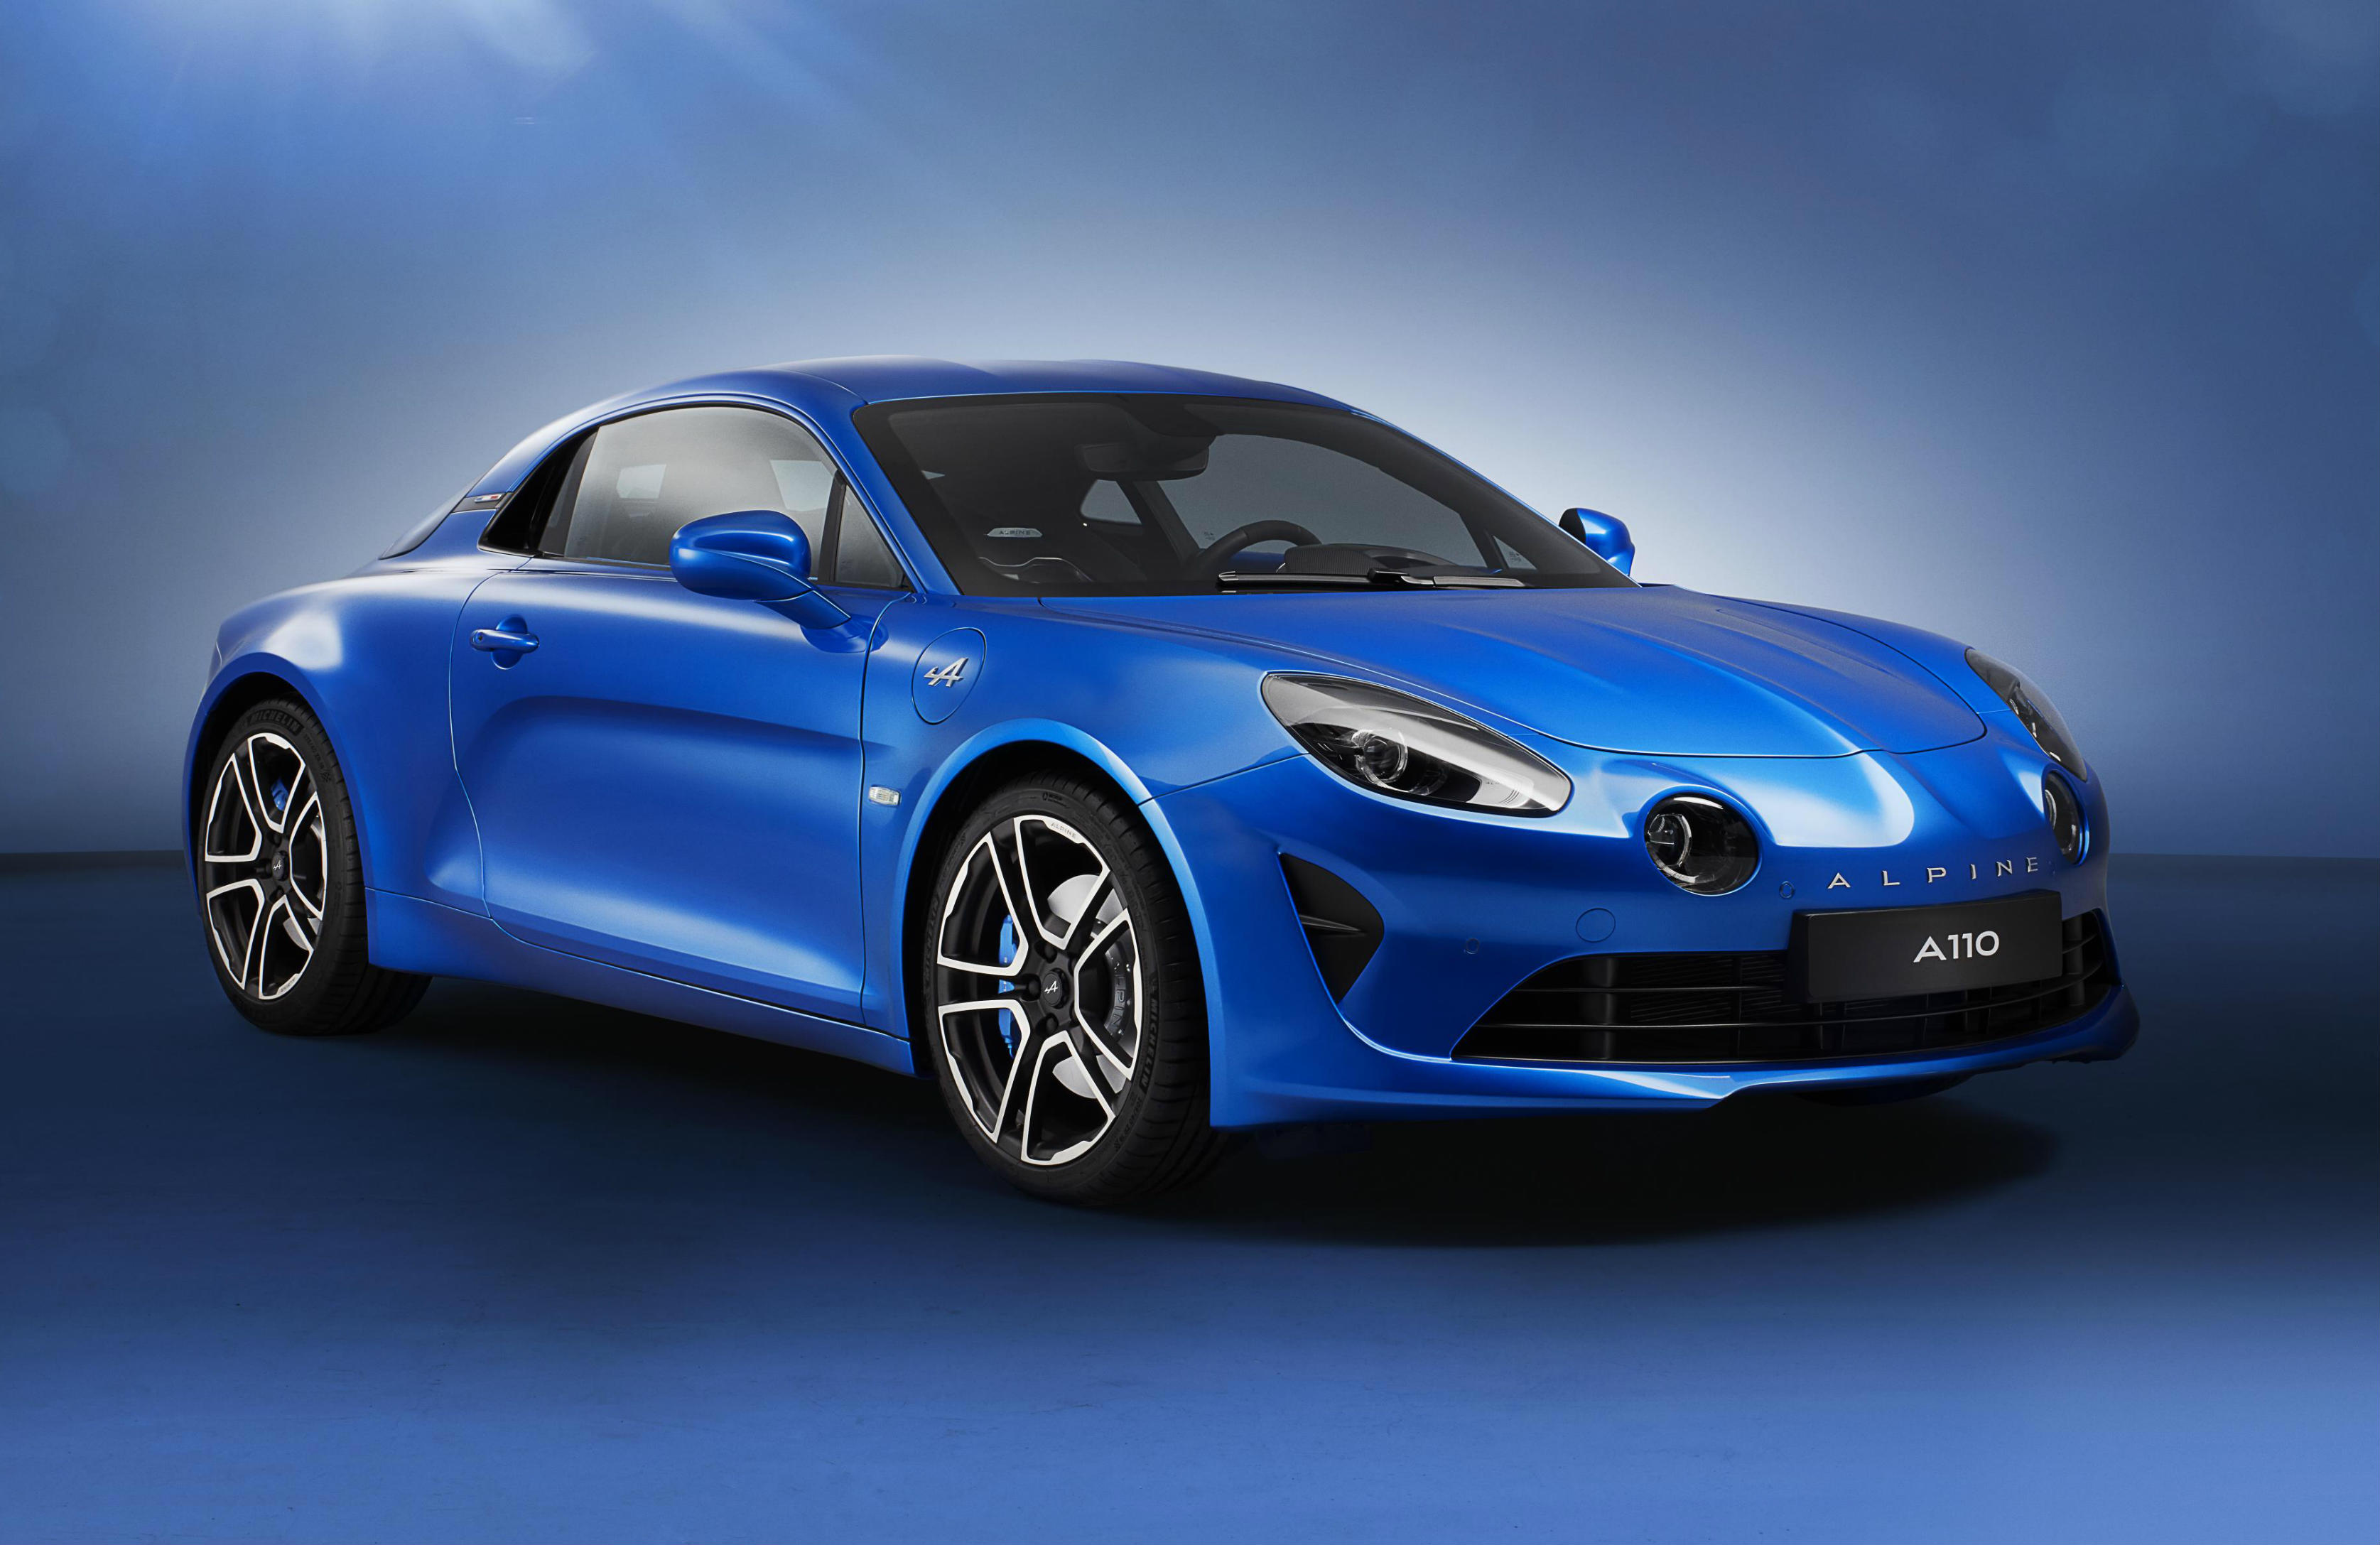 Alpine A110 Is A Compact And Agile French Sports Car Torque